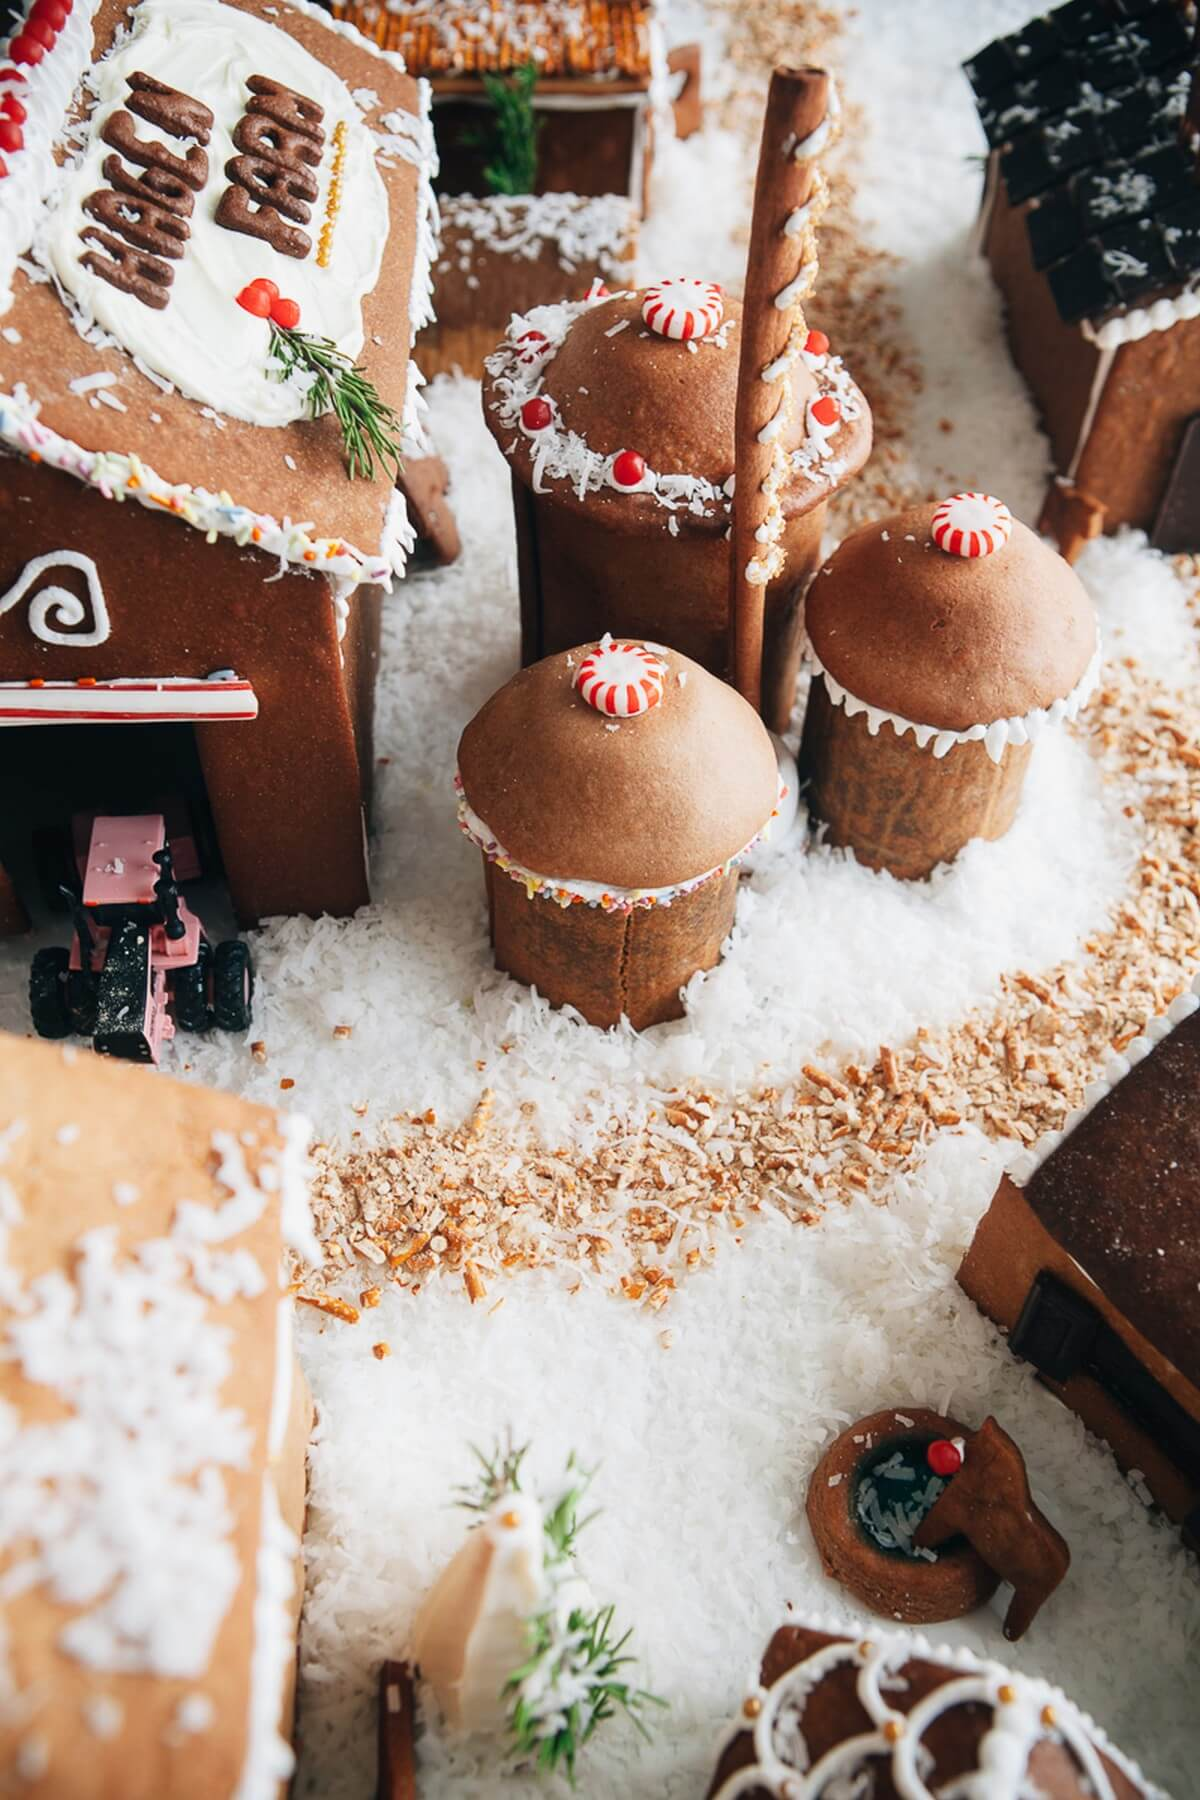 Would you like to spend some time this Christmas decorating gingerbread houses with the children but don't have time to bake your own gingerbread?